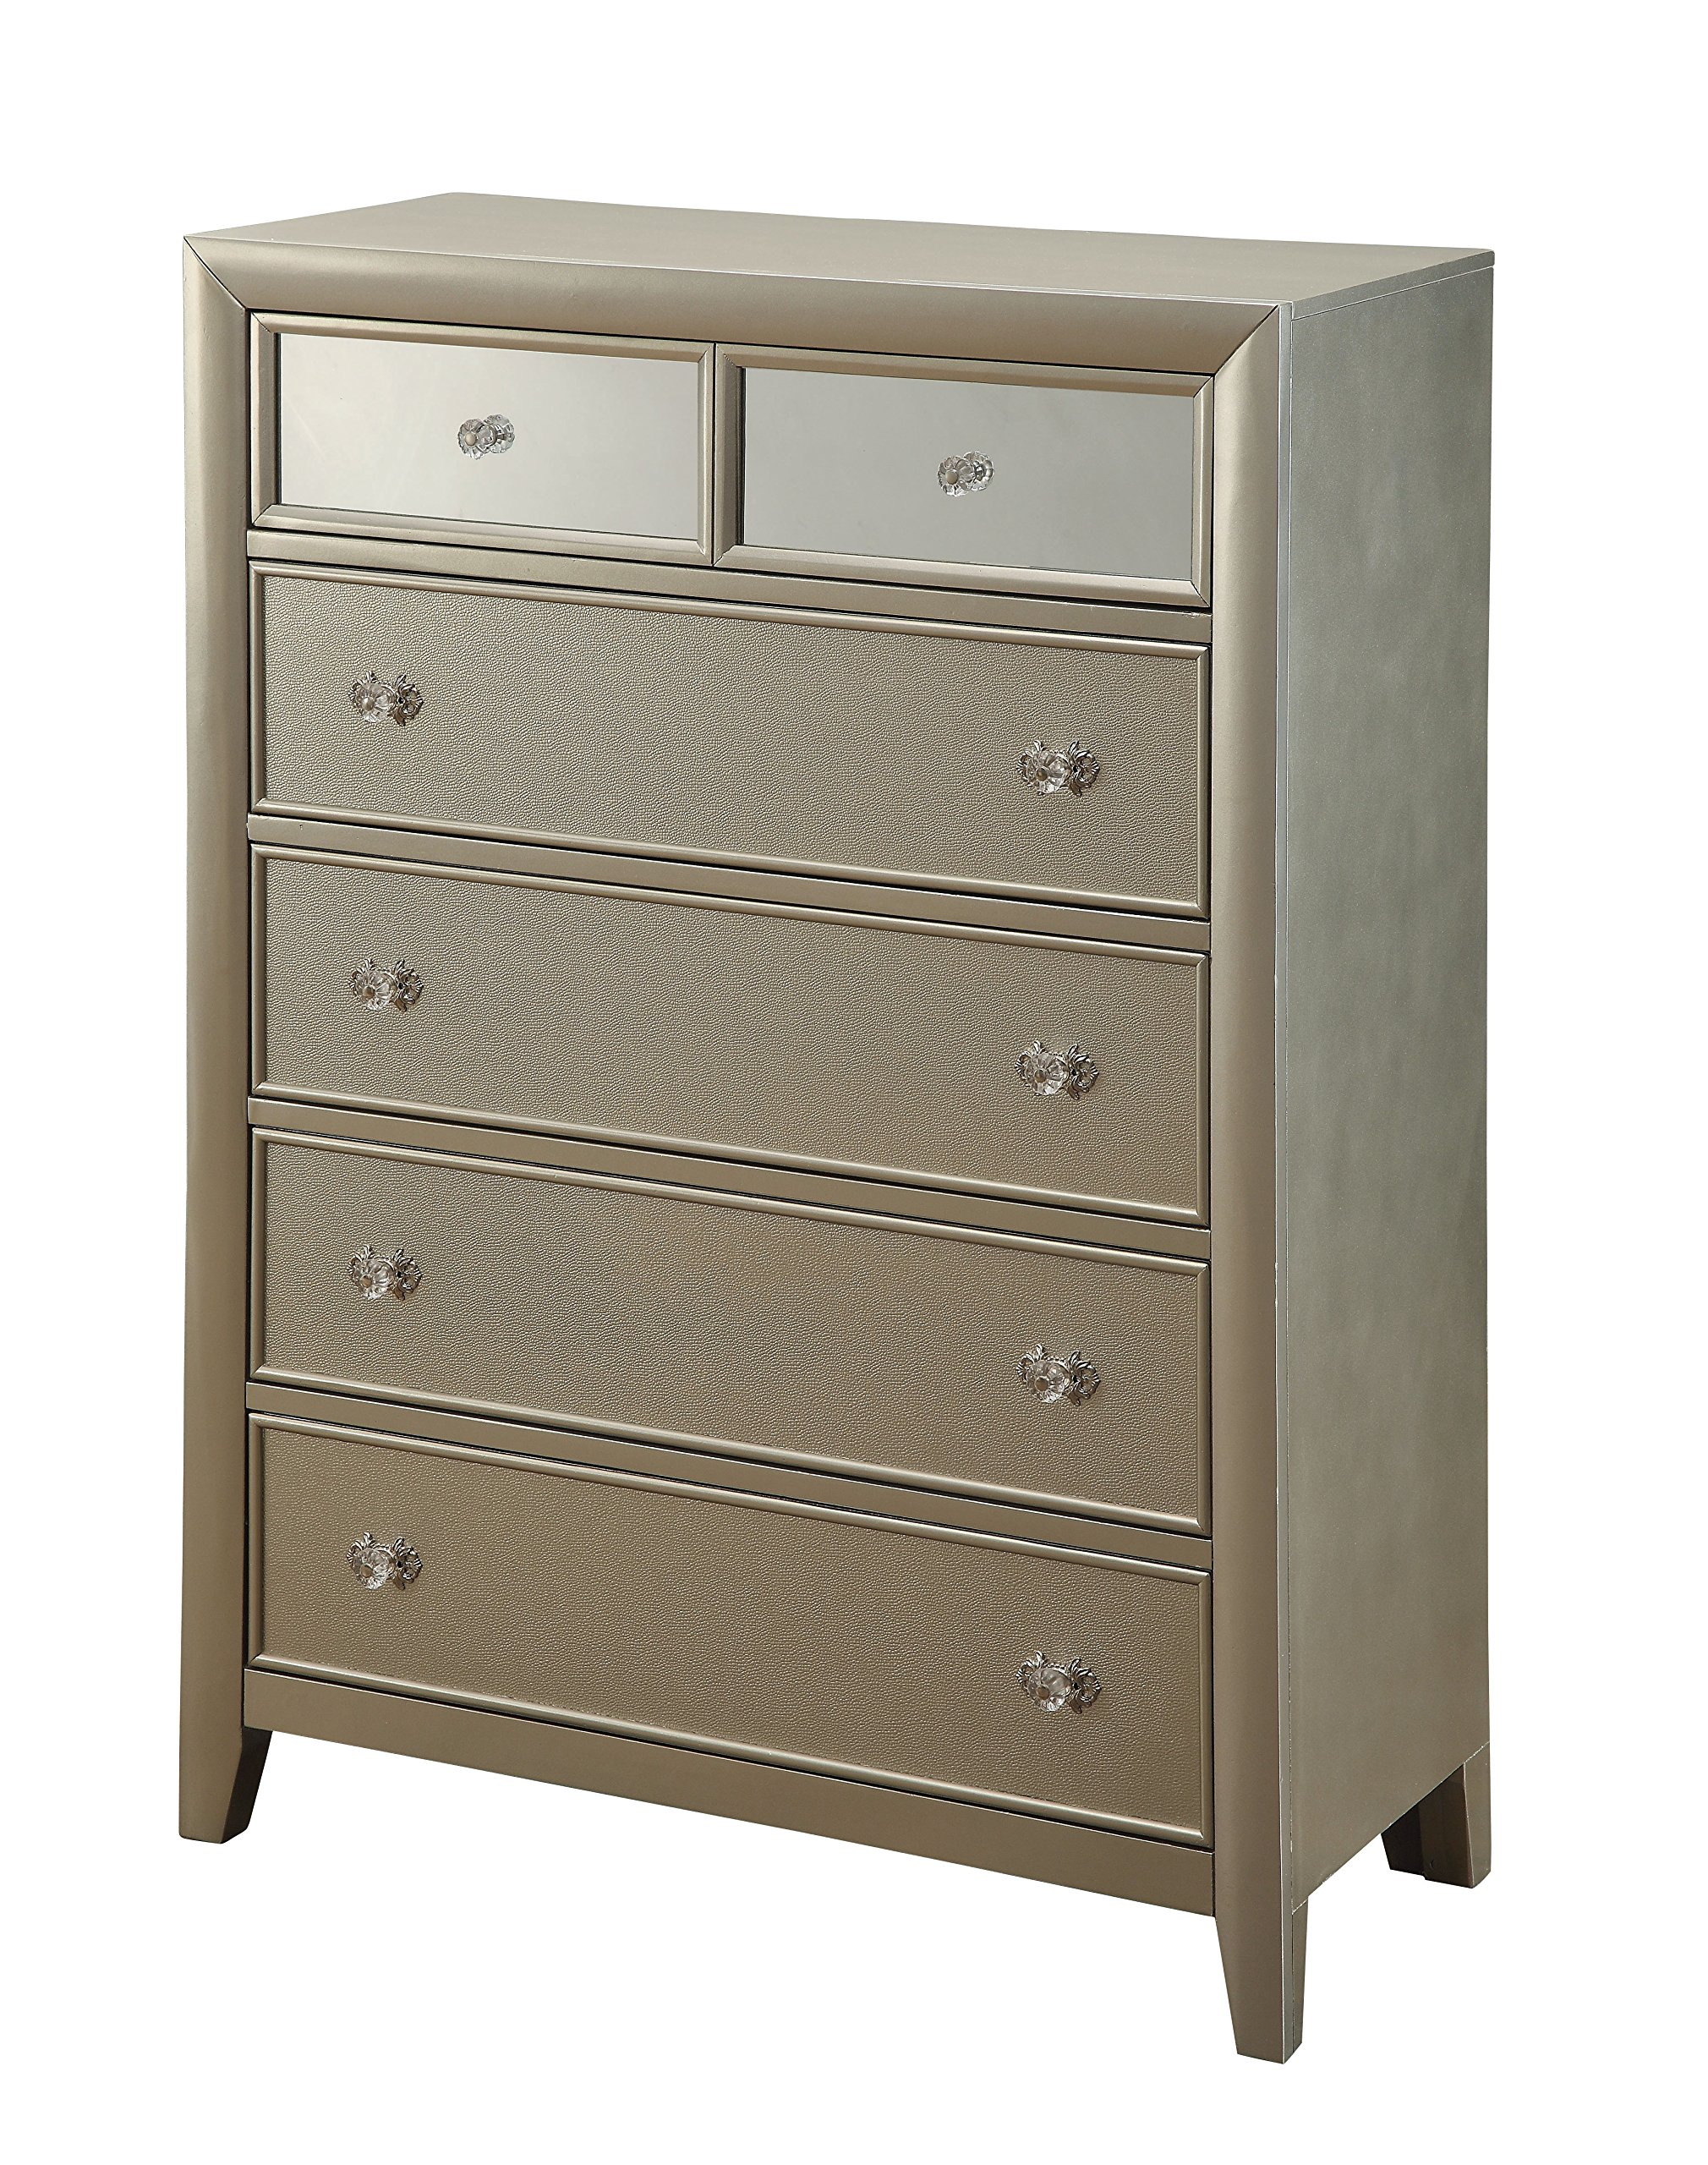 HOMES: Inside + Out ioHOMES Paulina Top Mirror Panel 6-Drawer Chest, Silver by HOMES: Inside + Out